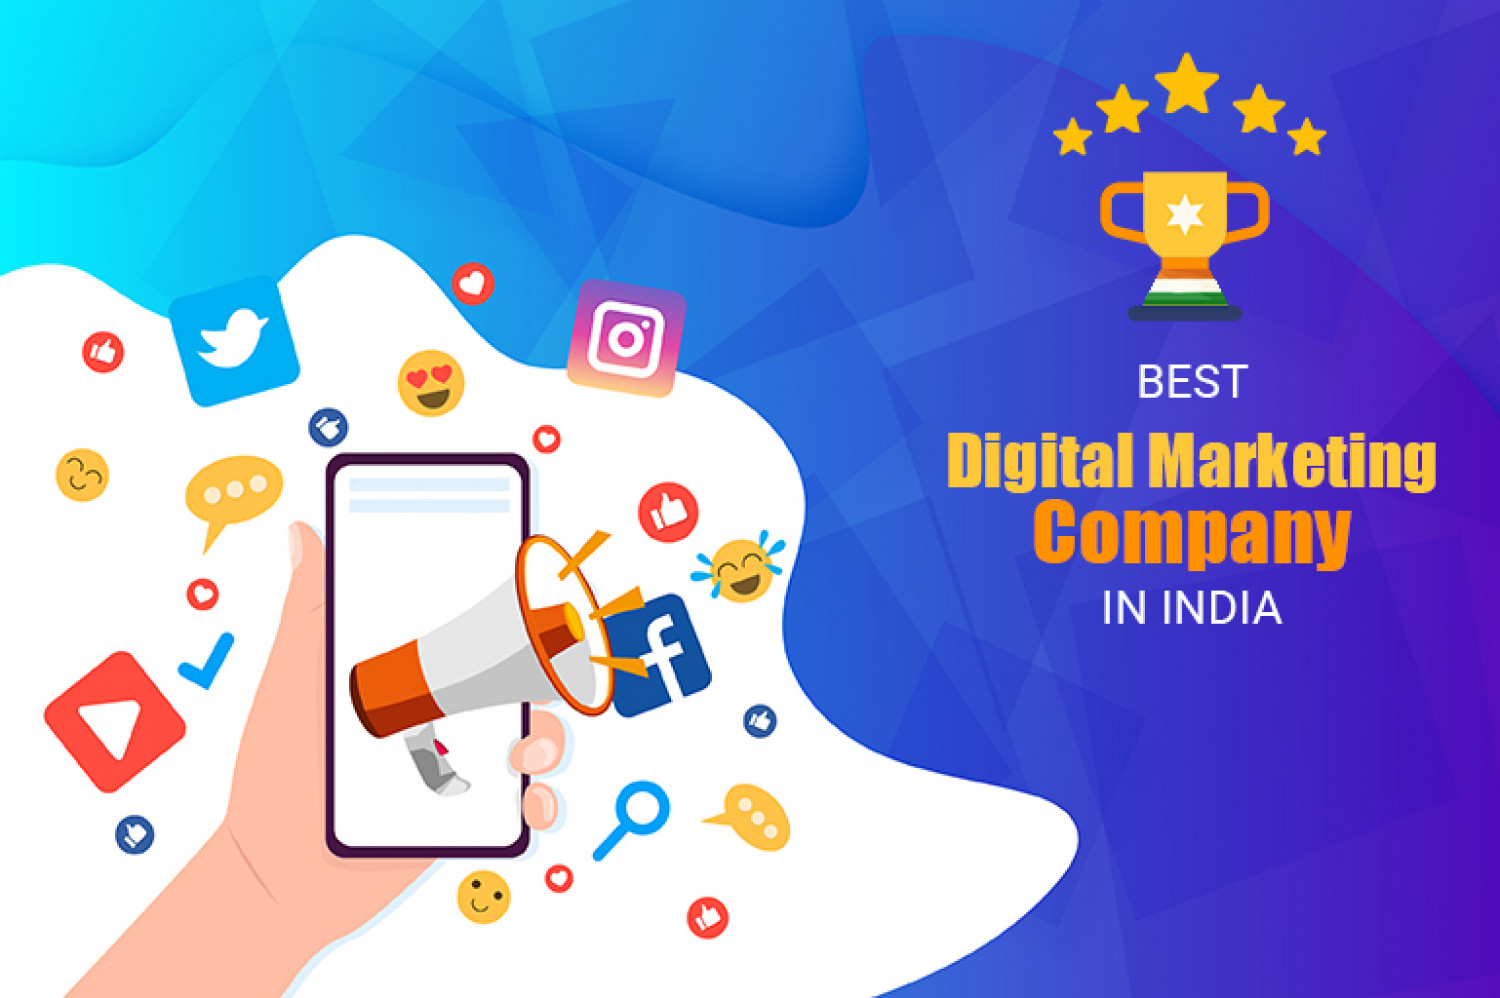 Find the Best Digital Marketing Company in India   SEO Services in India Infographic